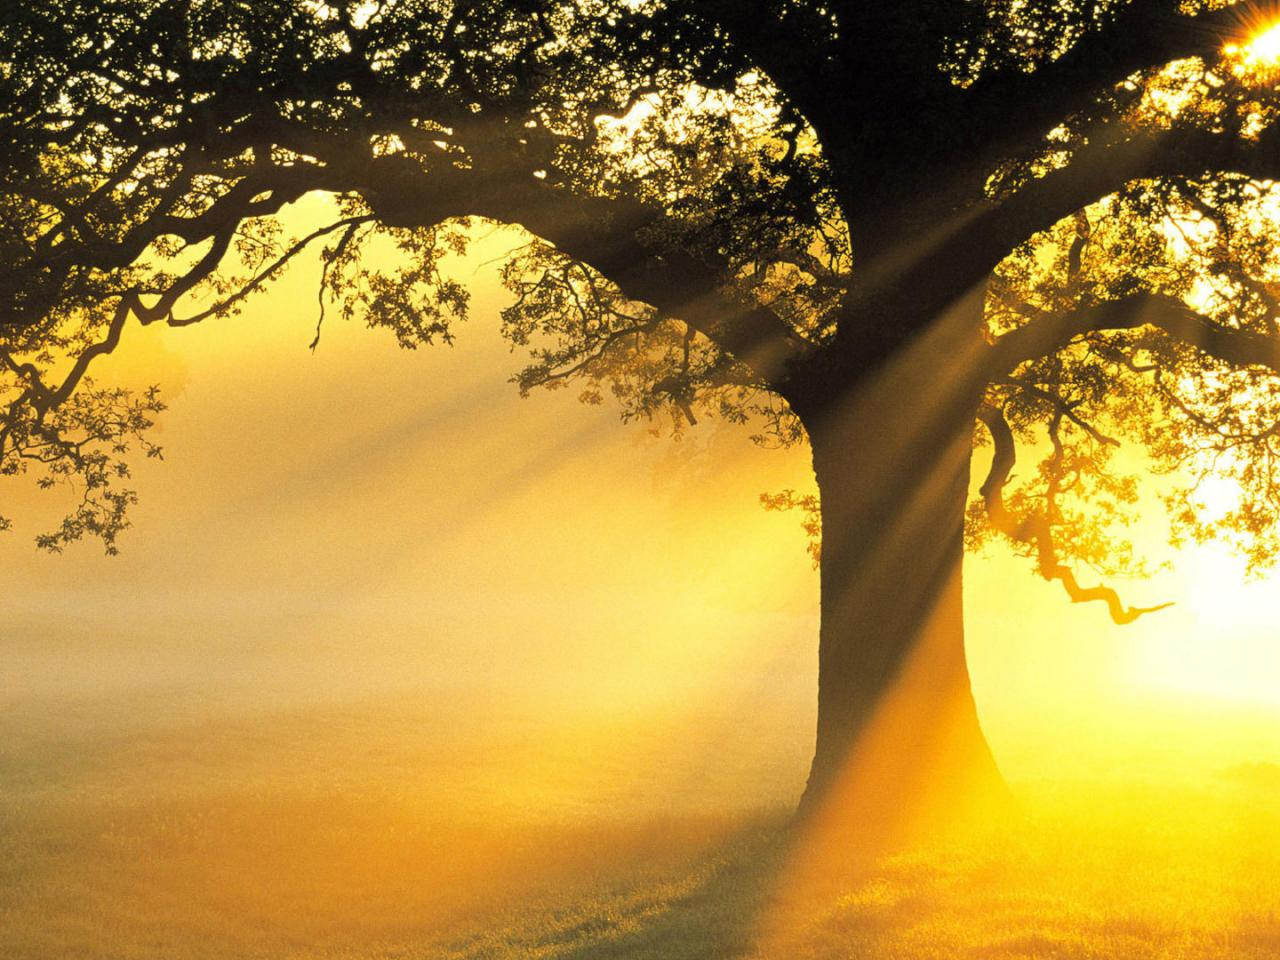 Nature Images Hd Big Tree In Morning Hd Wallpapers